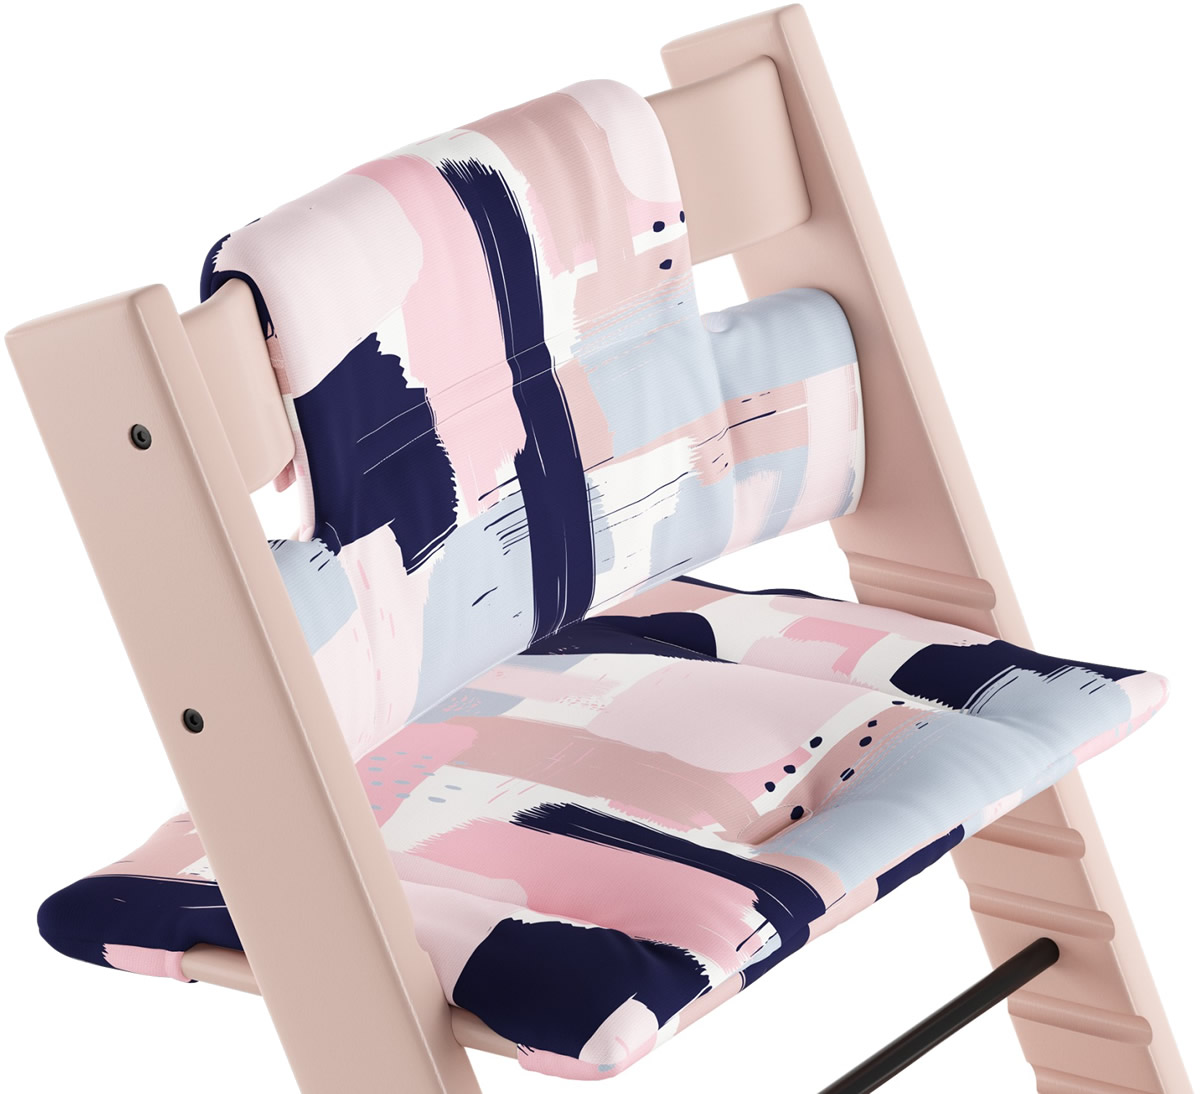 Stokke Tripp Trapp Cushion Paintbrush